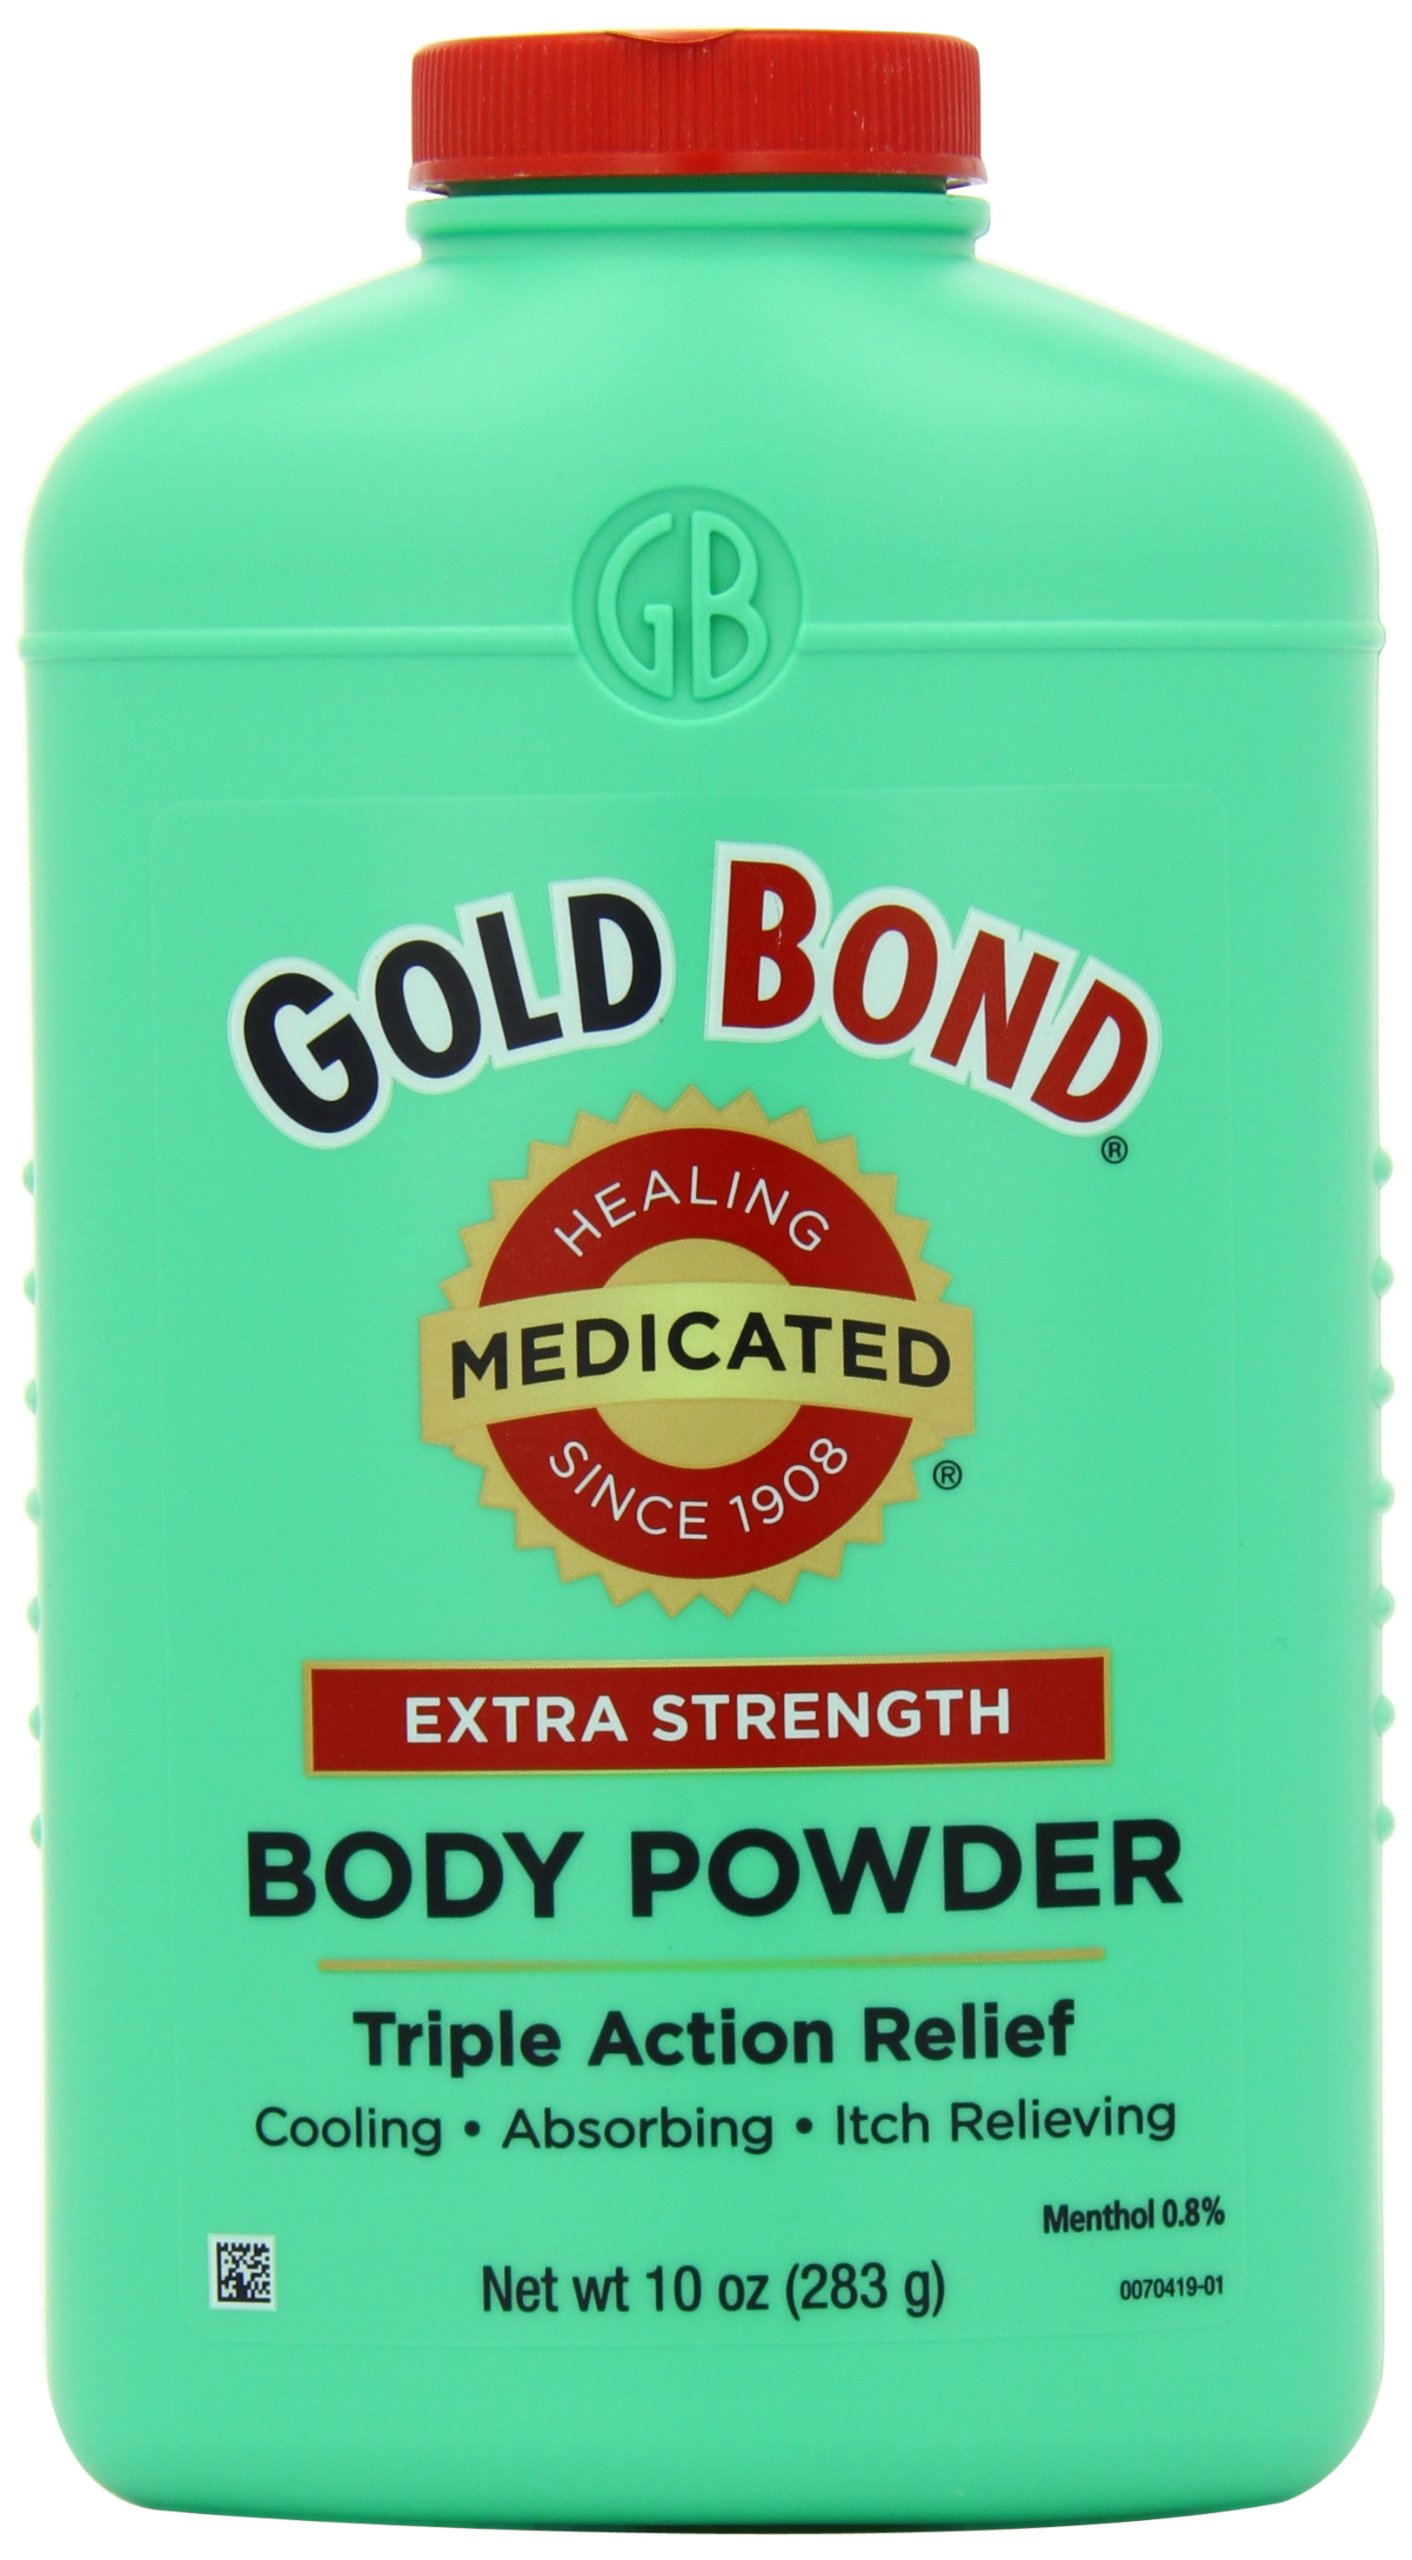 Gold Bond Medicated Extra Strength Powder, 10 Ounce Containers (Pack of 3), Helps Soothe and Relieve Skin Irritaitons and Itching, Cools, Absorbs Moisture, Deodorizes, Stronger than Gold Bond Original